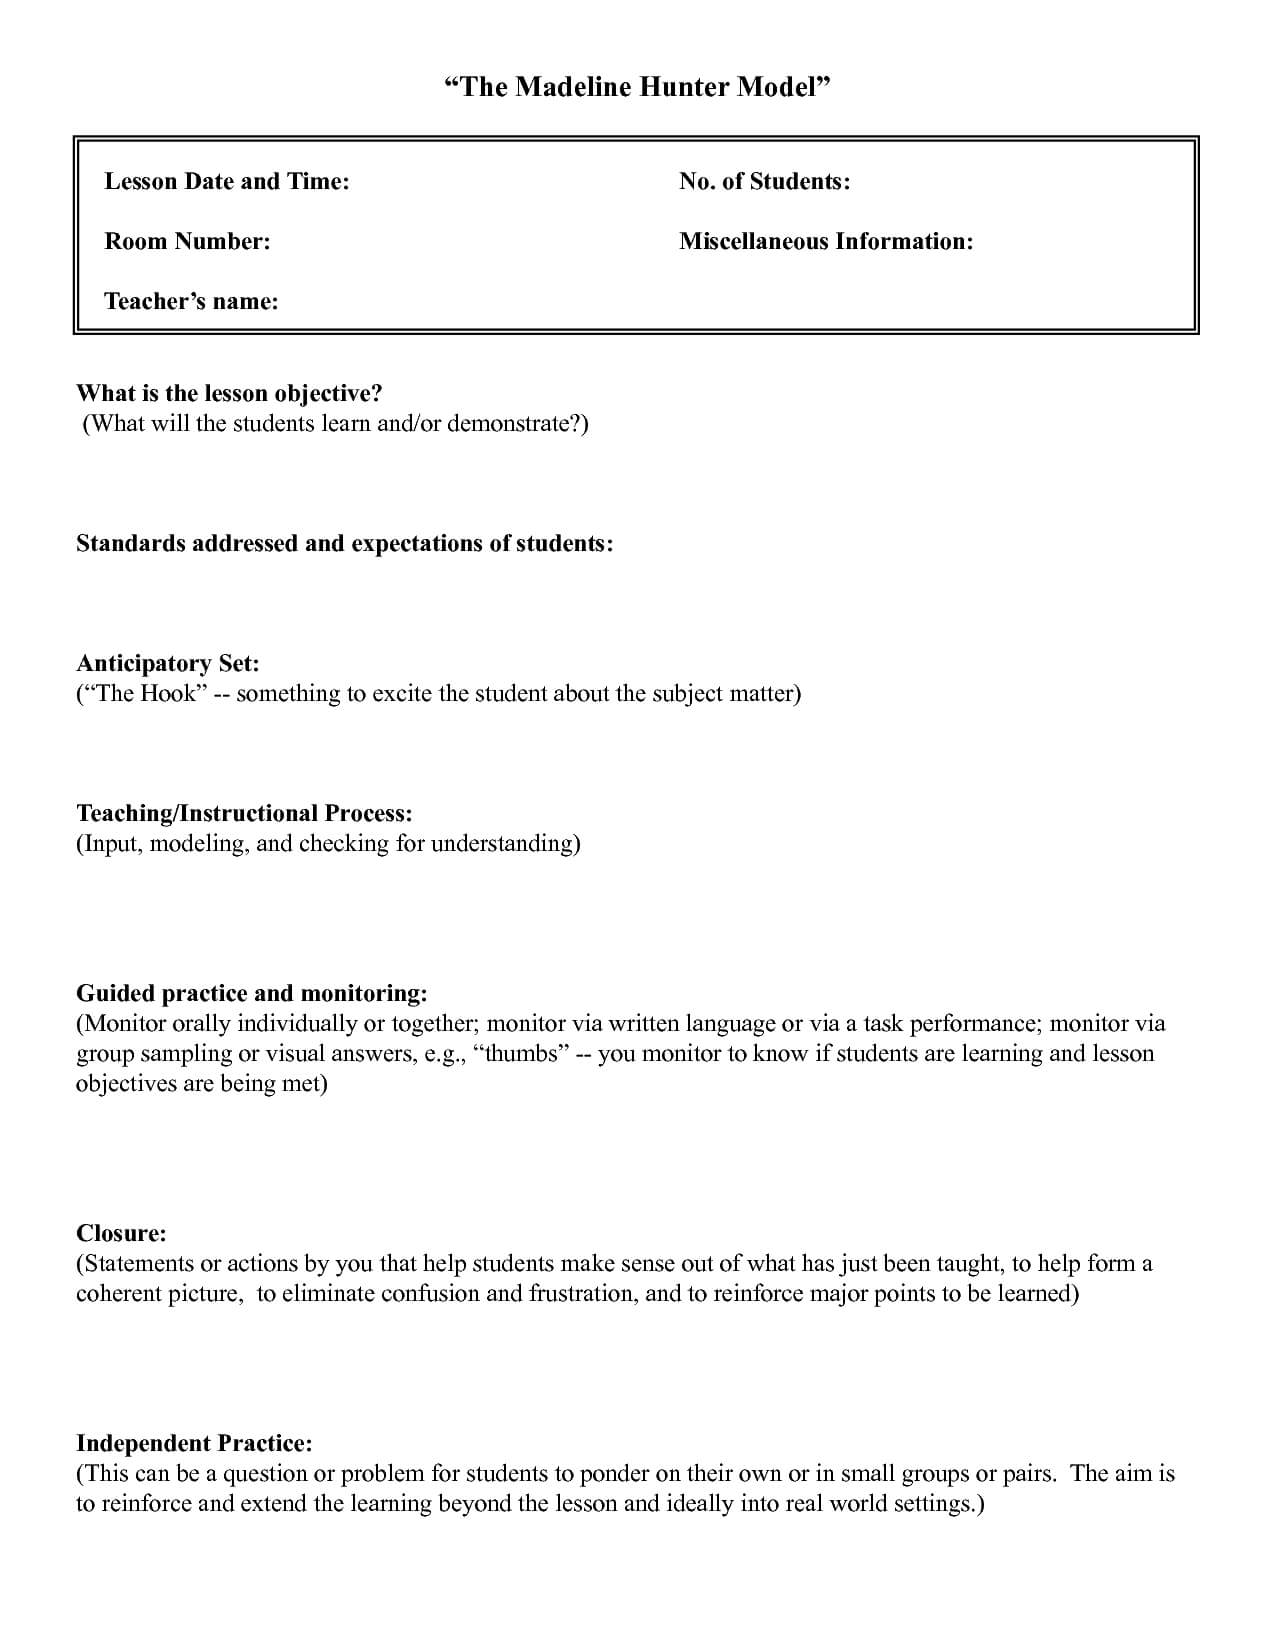 Five Common Mistakes In Writing Lesson. | Lesson Plan Throughout Madeline Hunter Lesson Plan Blank Template